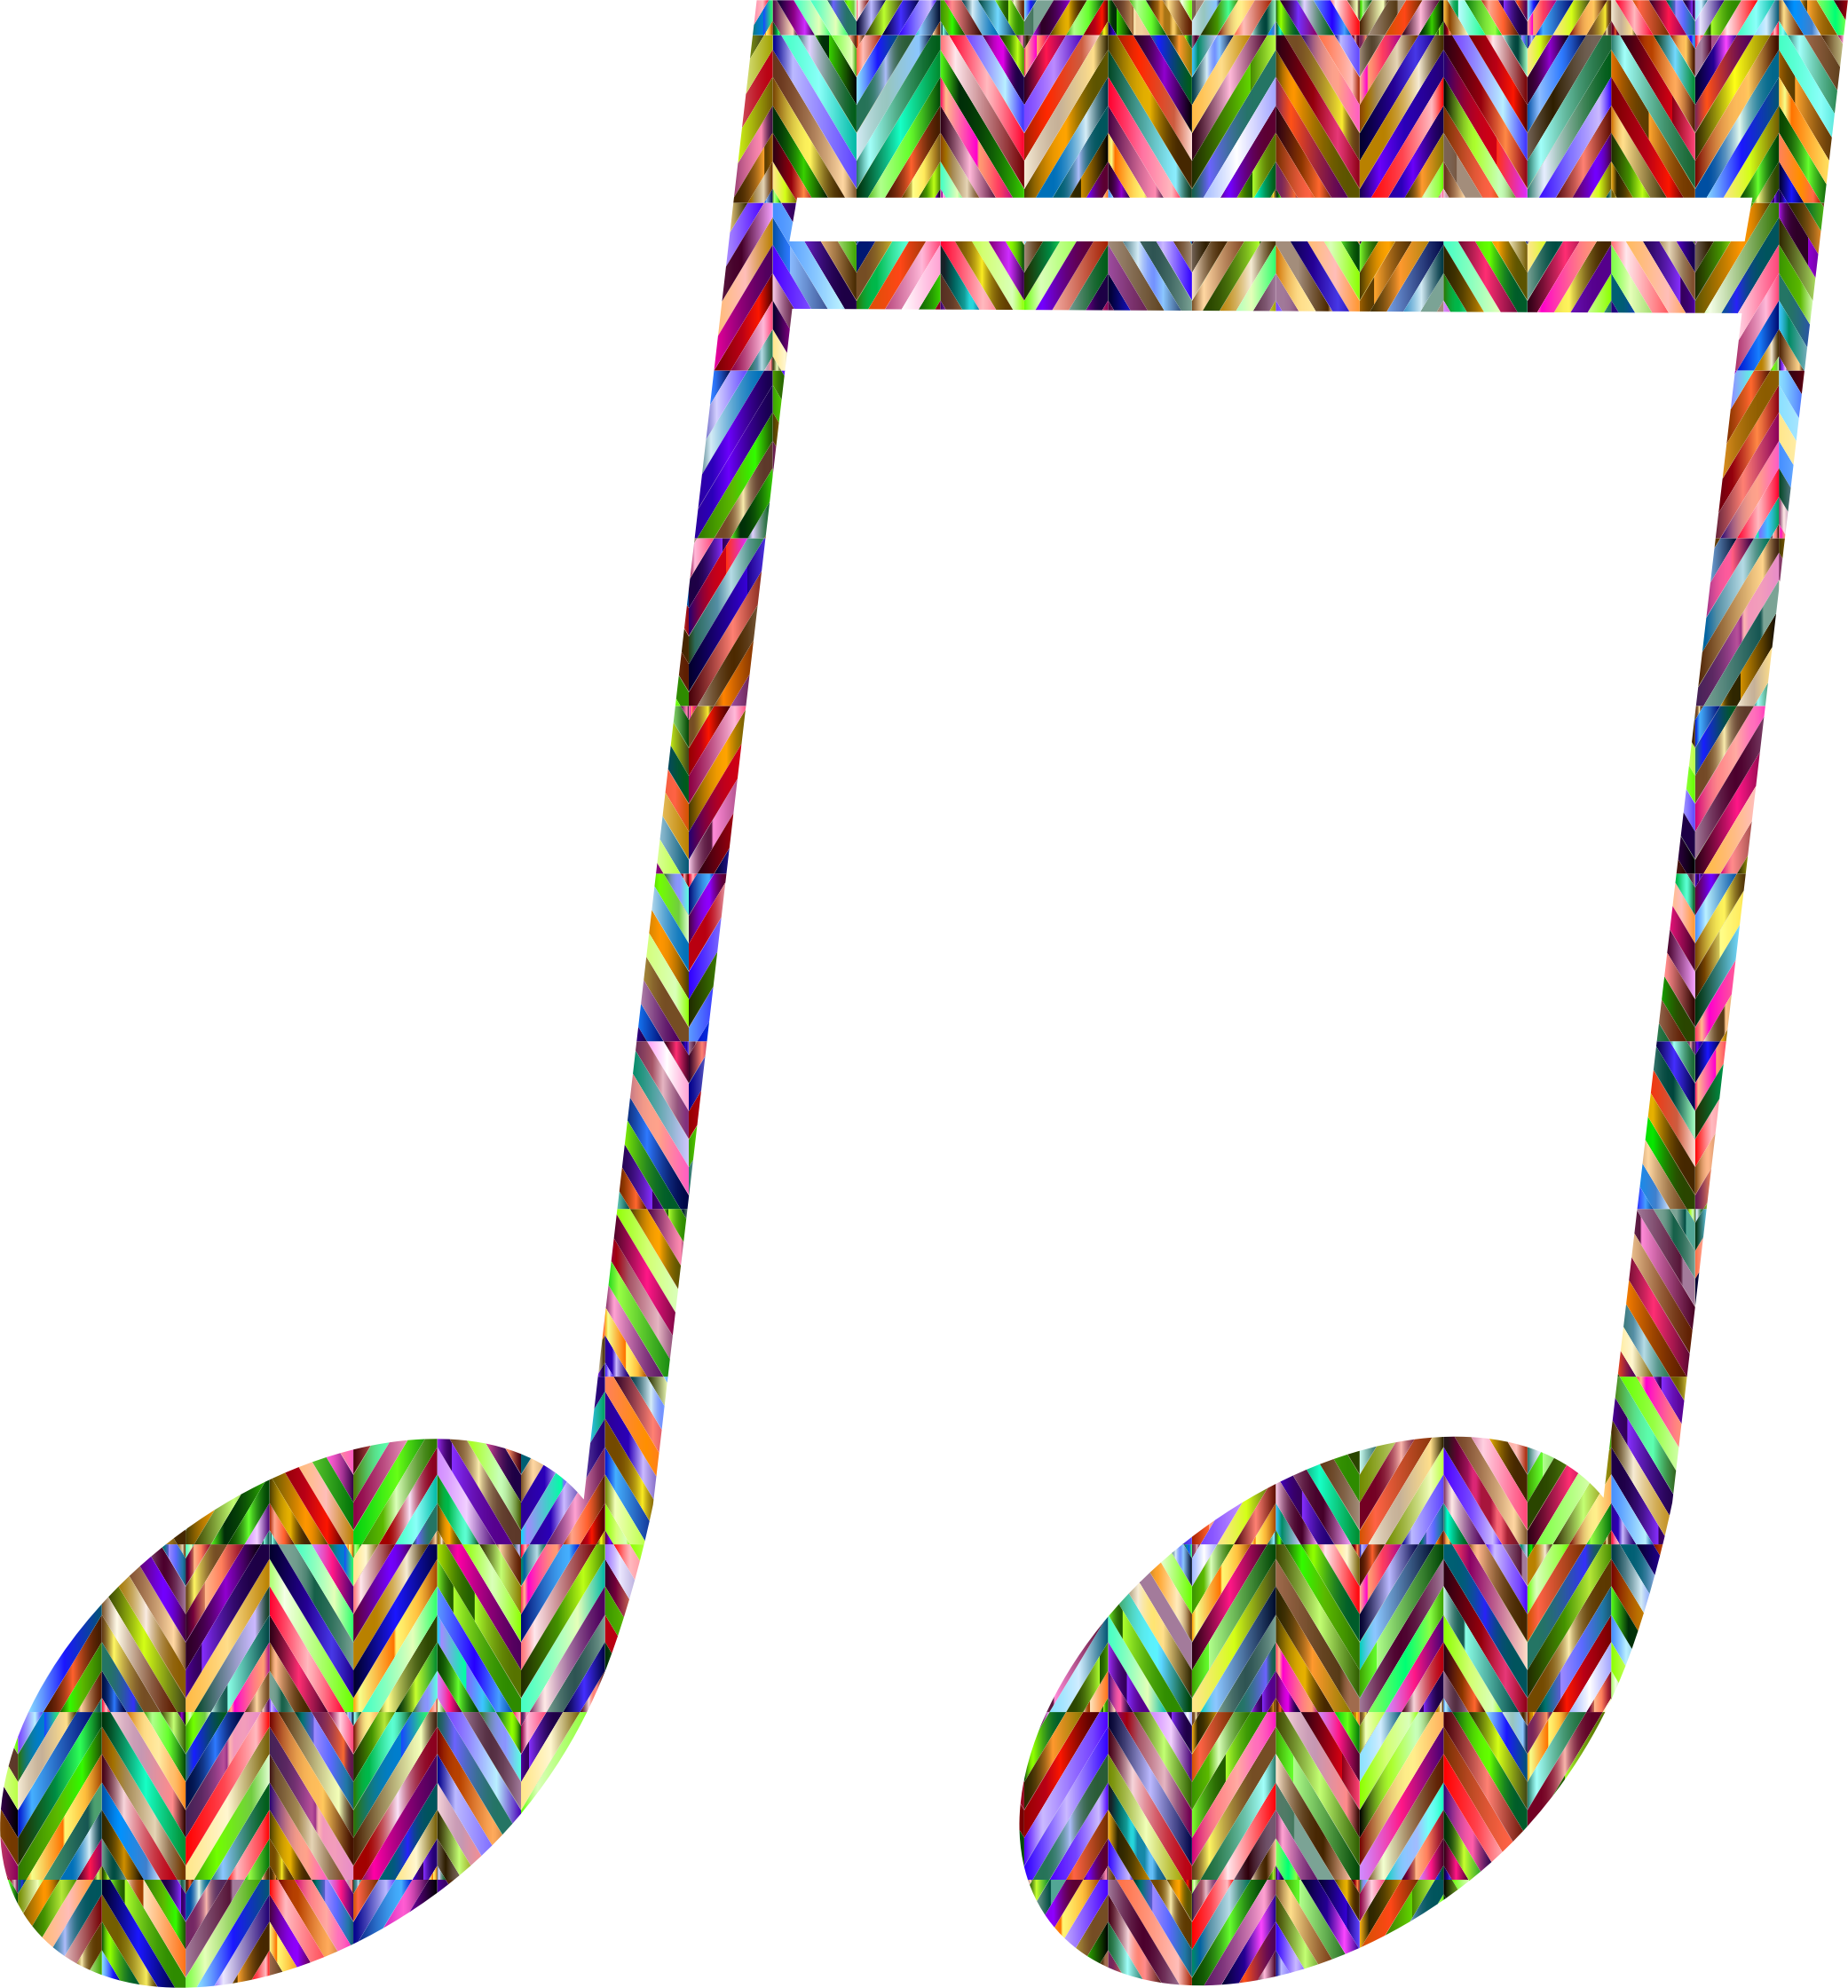 Prismatic Strips Musical Note by GDJ